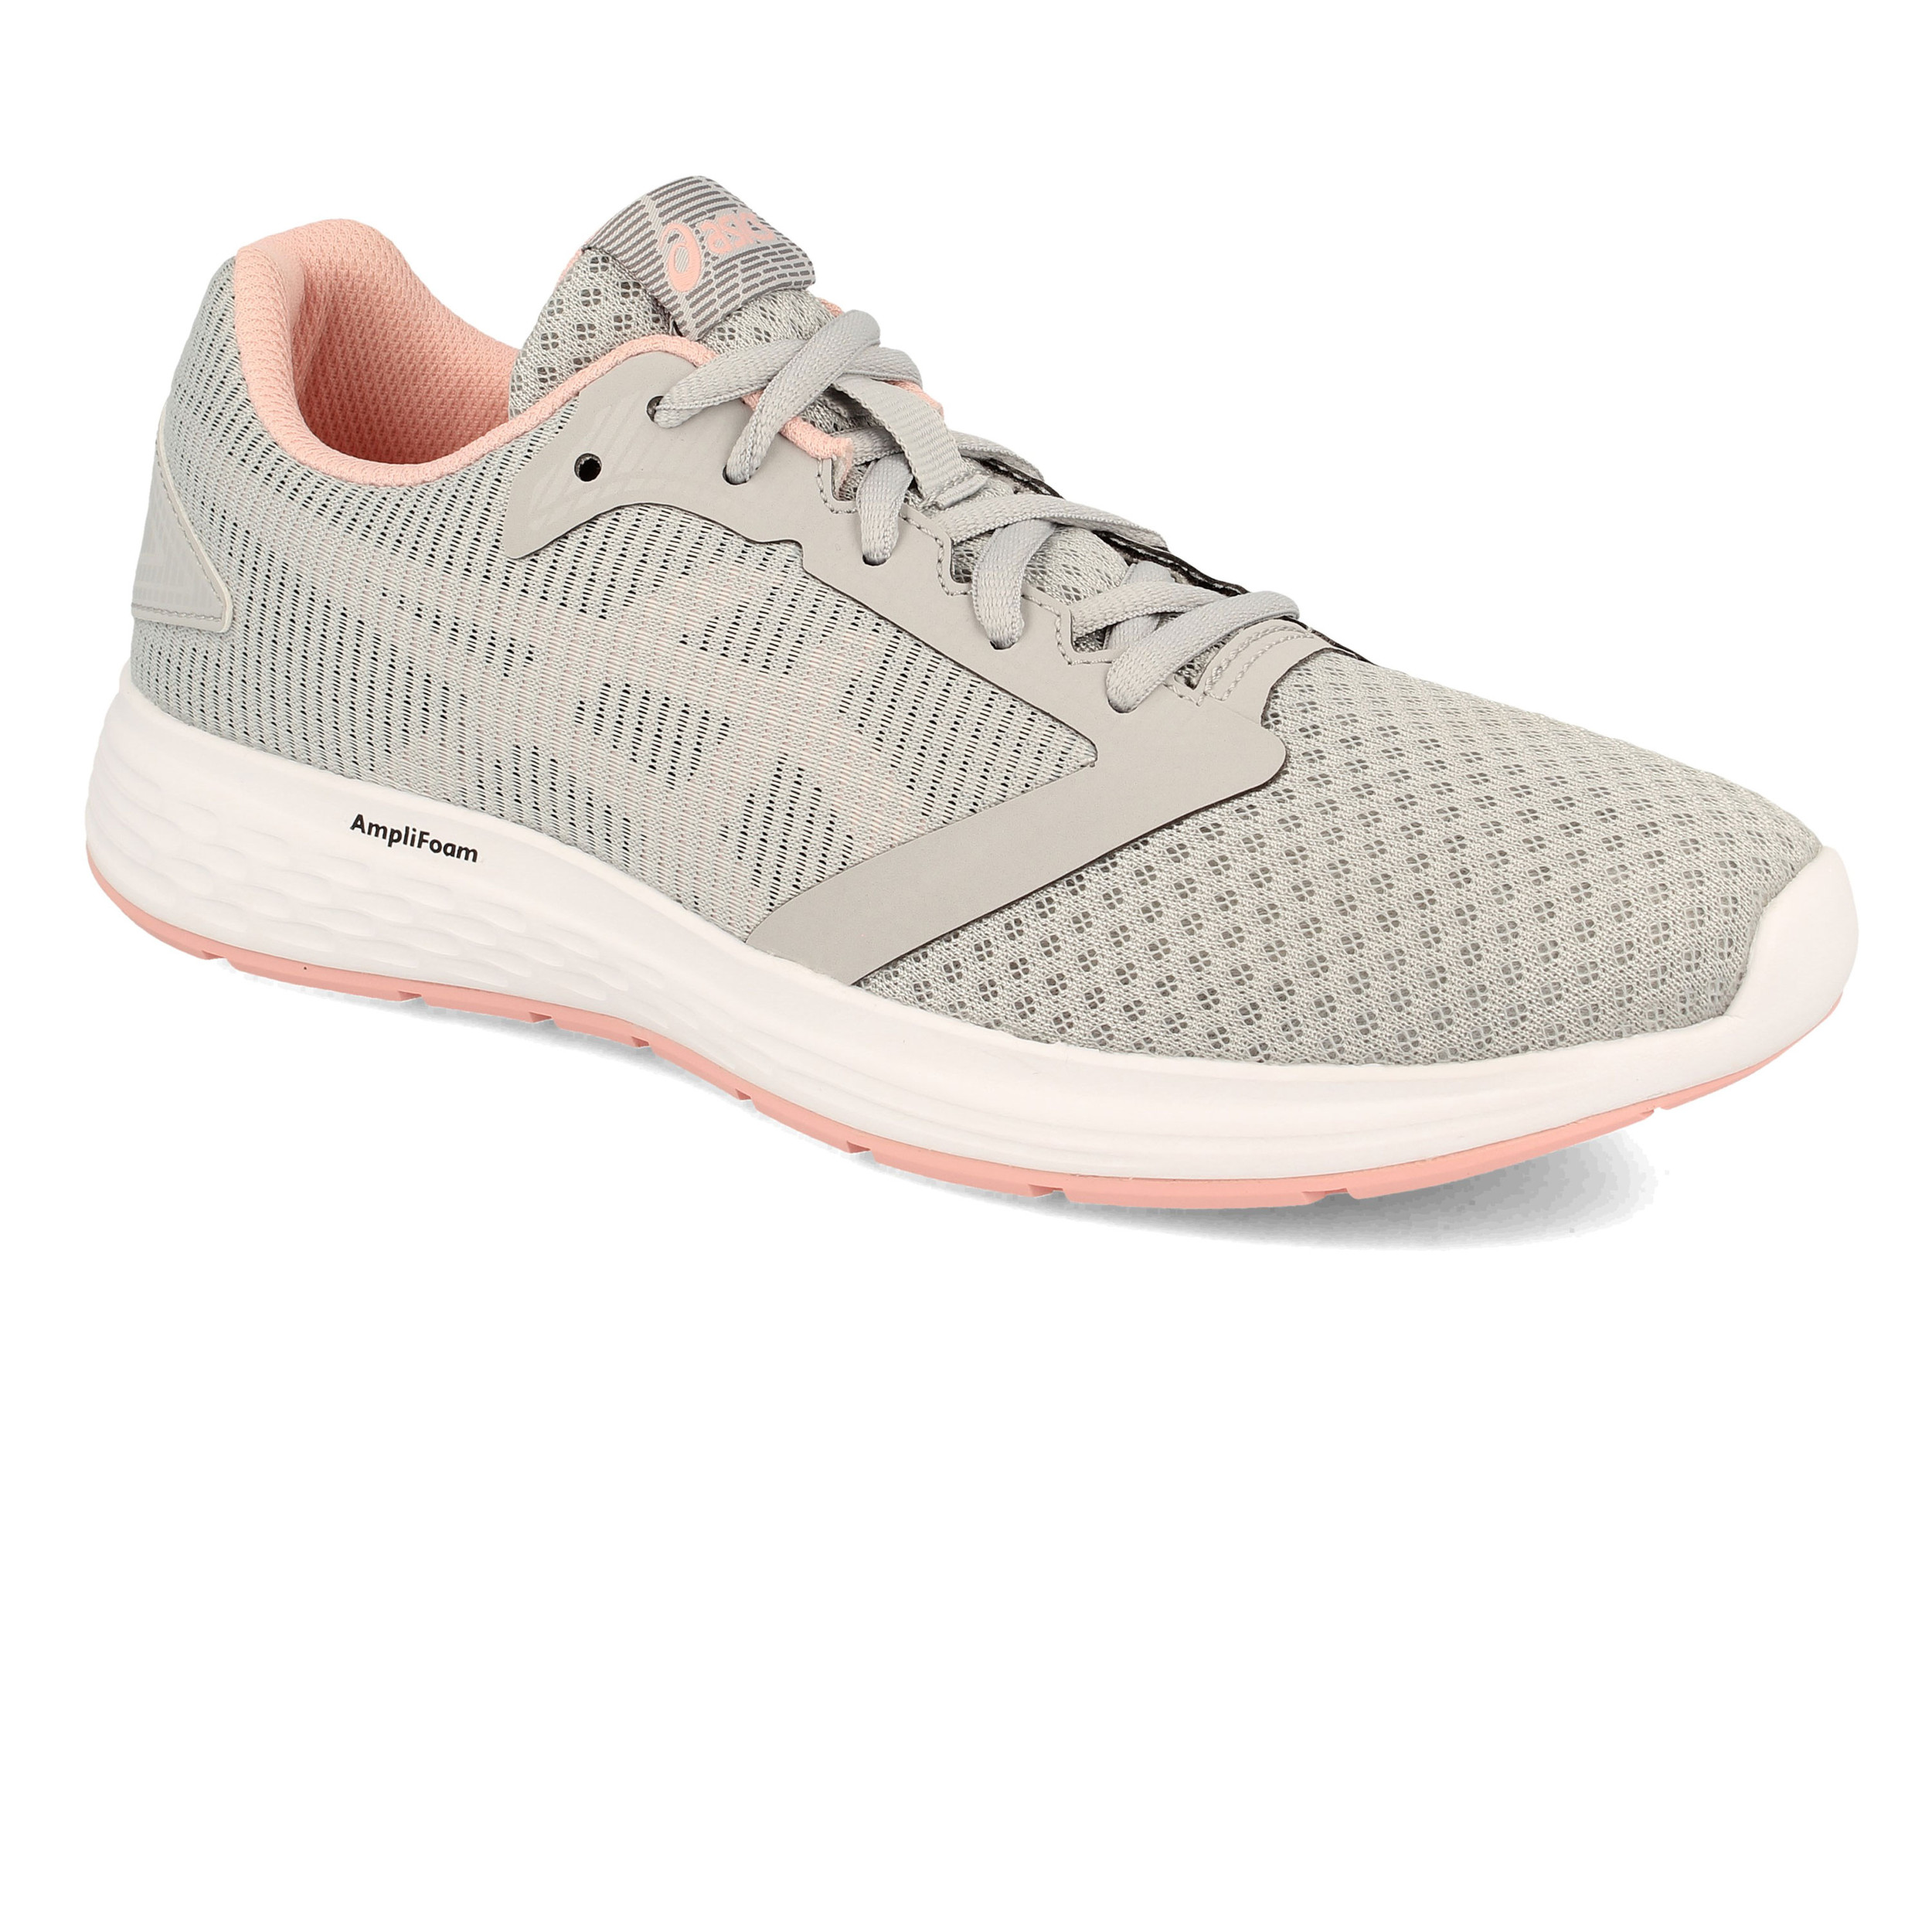 Asics Damenschuhe Patriot 10 Running Running Running Schuhes Trainers Sneakers Grau Sports Breathable a2681e